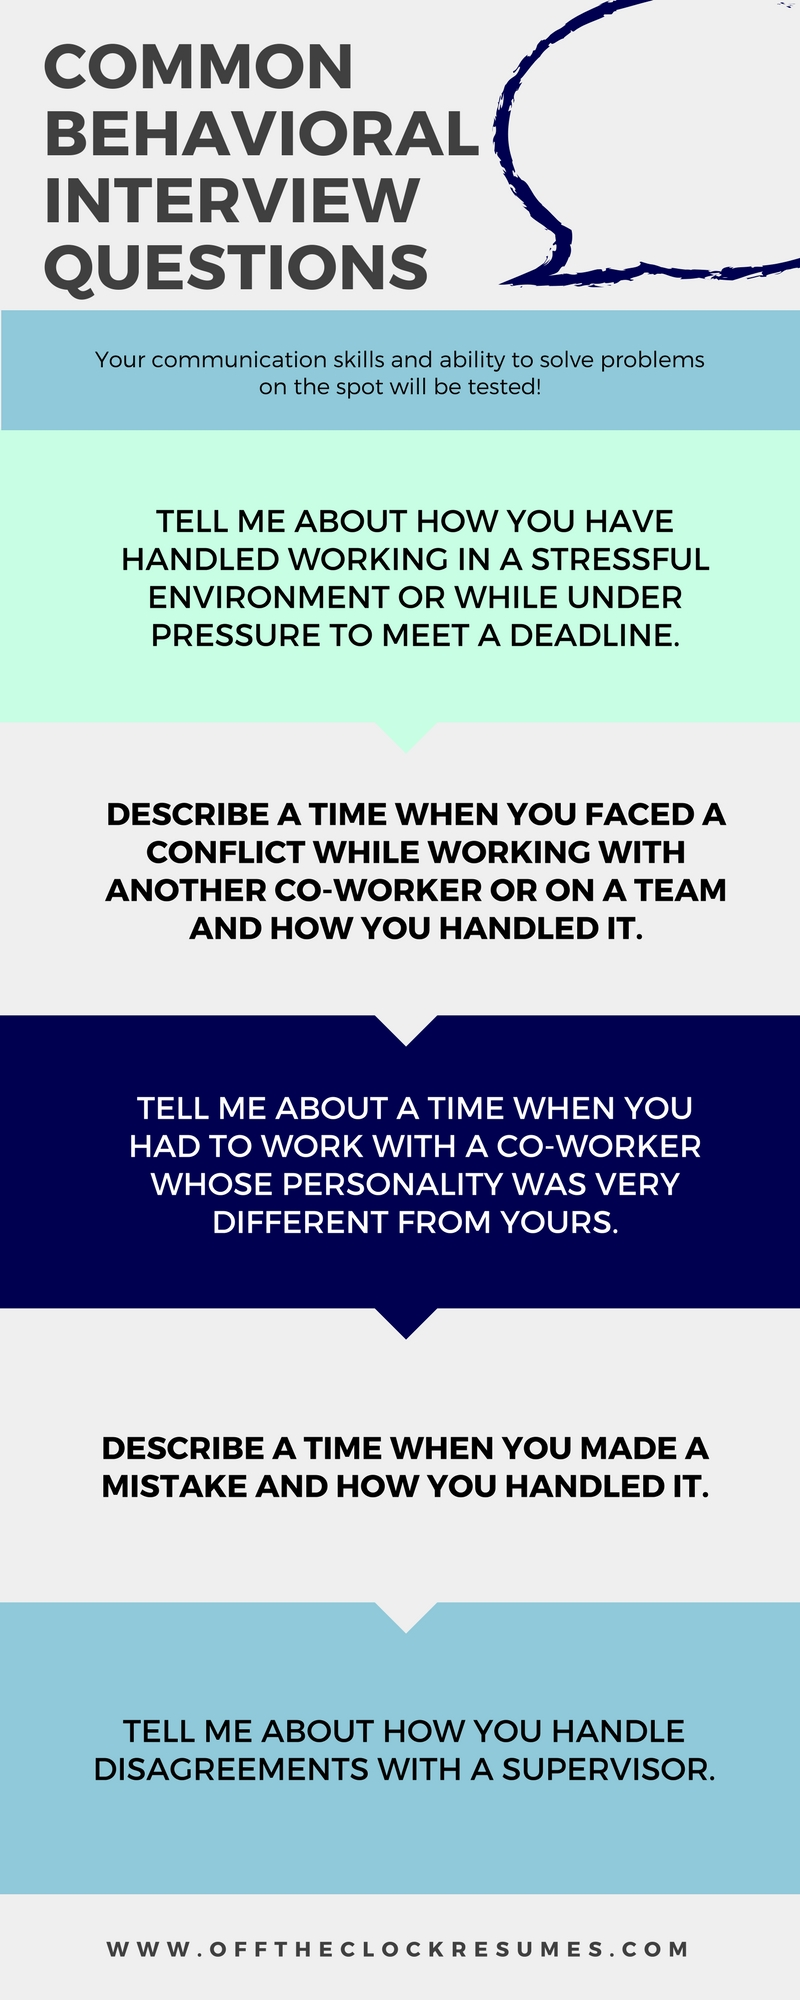 Best Answers To Common Behavioral Interview Questions | Off The Clock Resumes